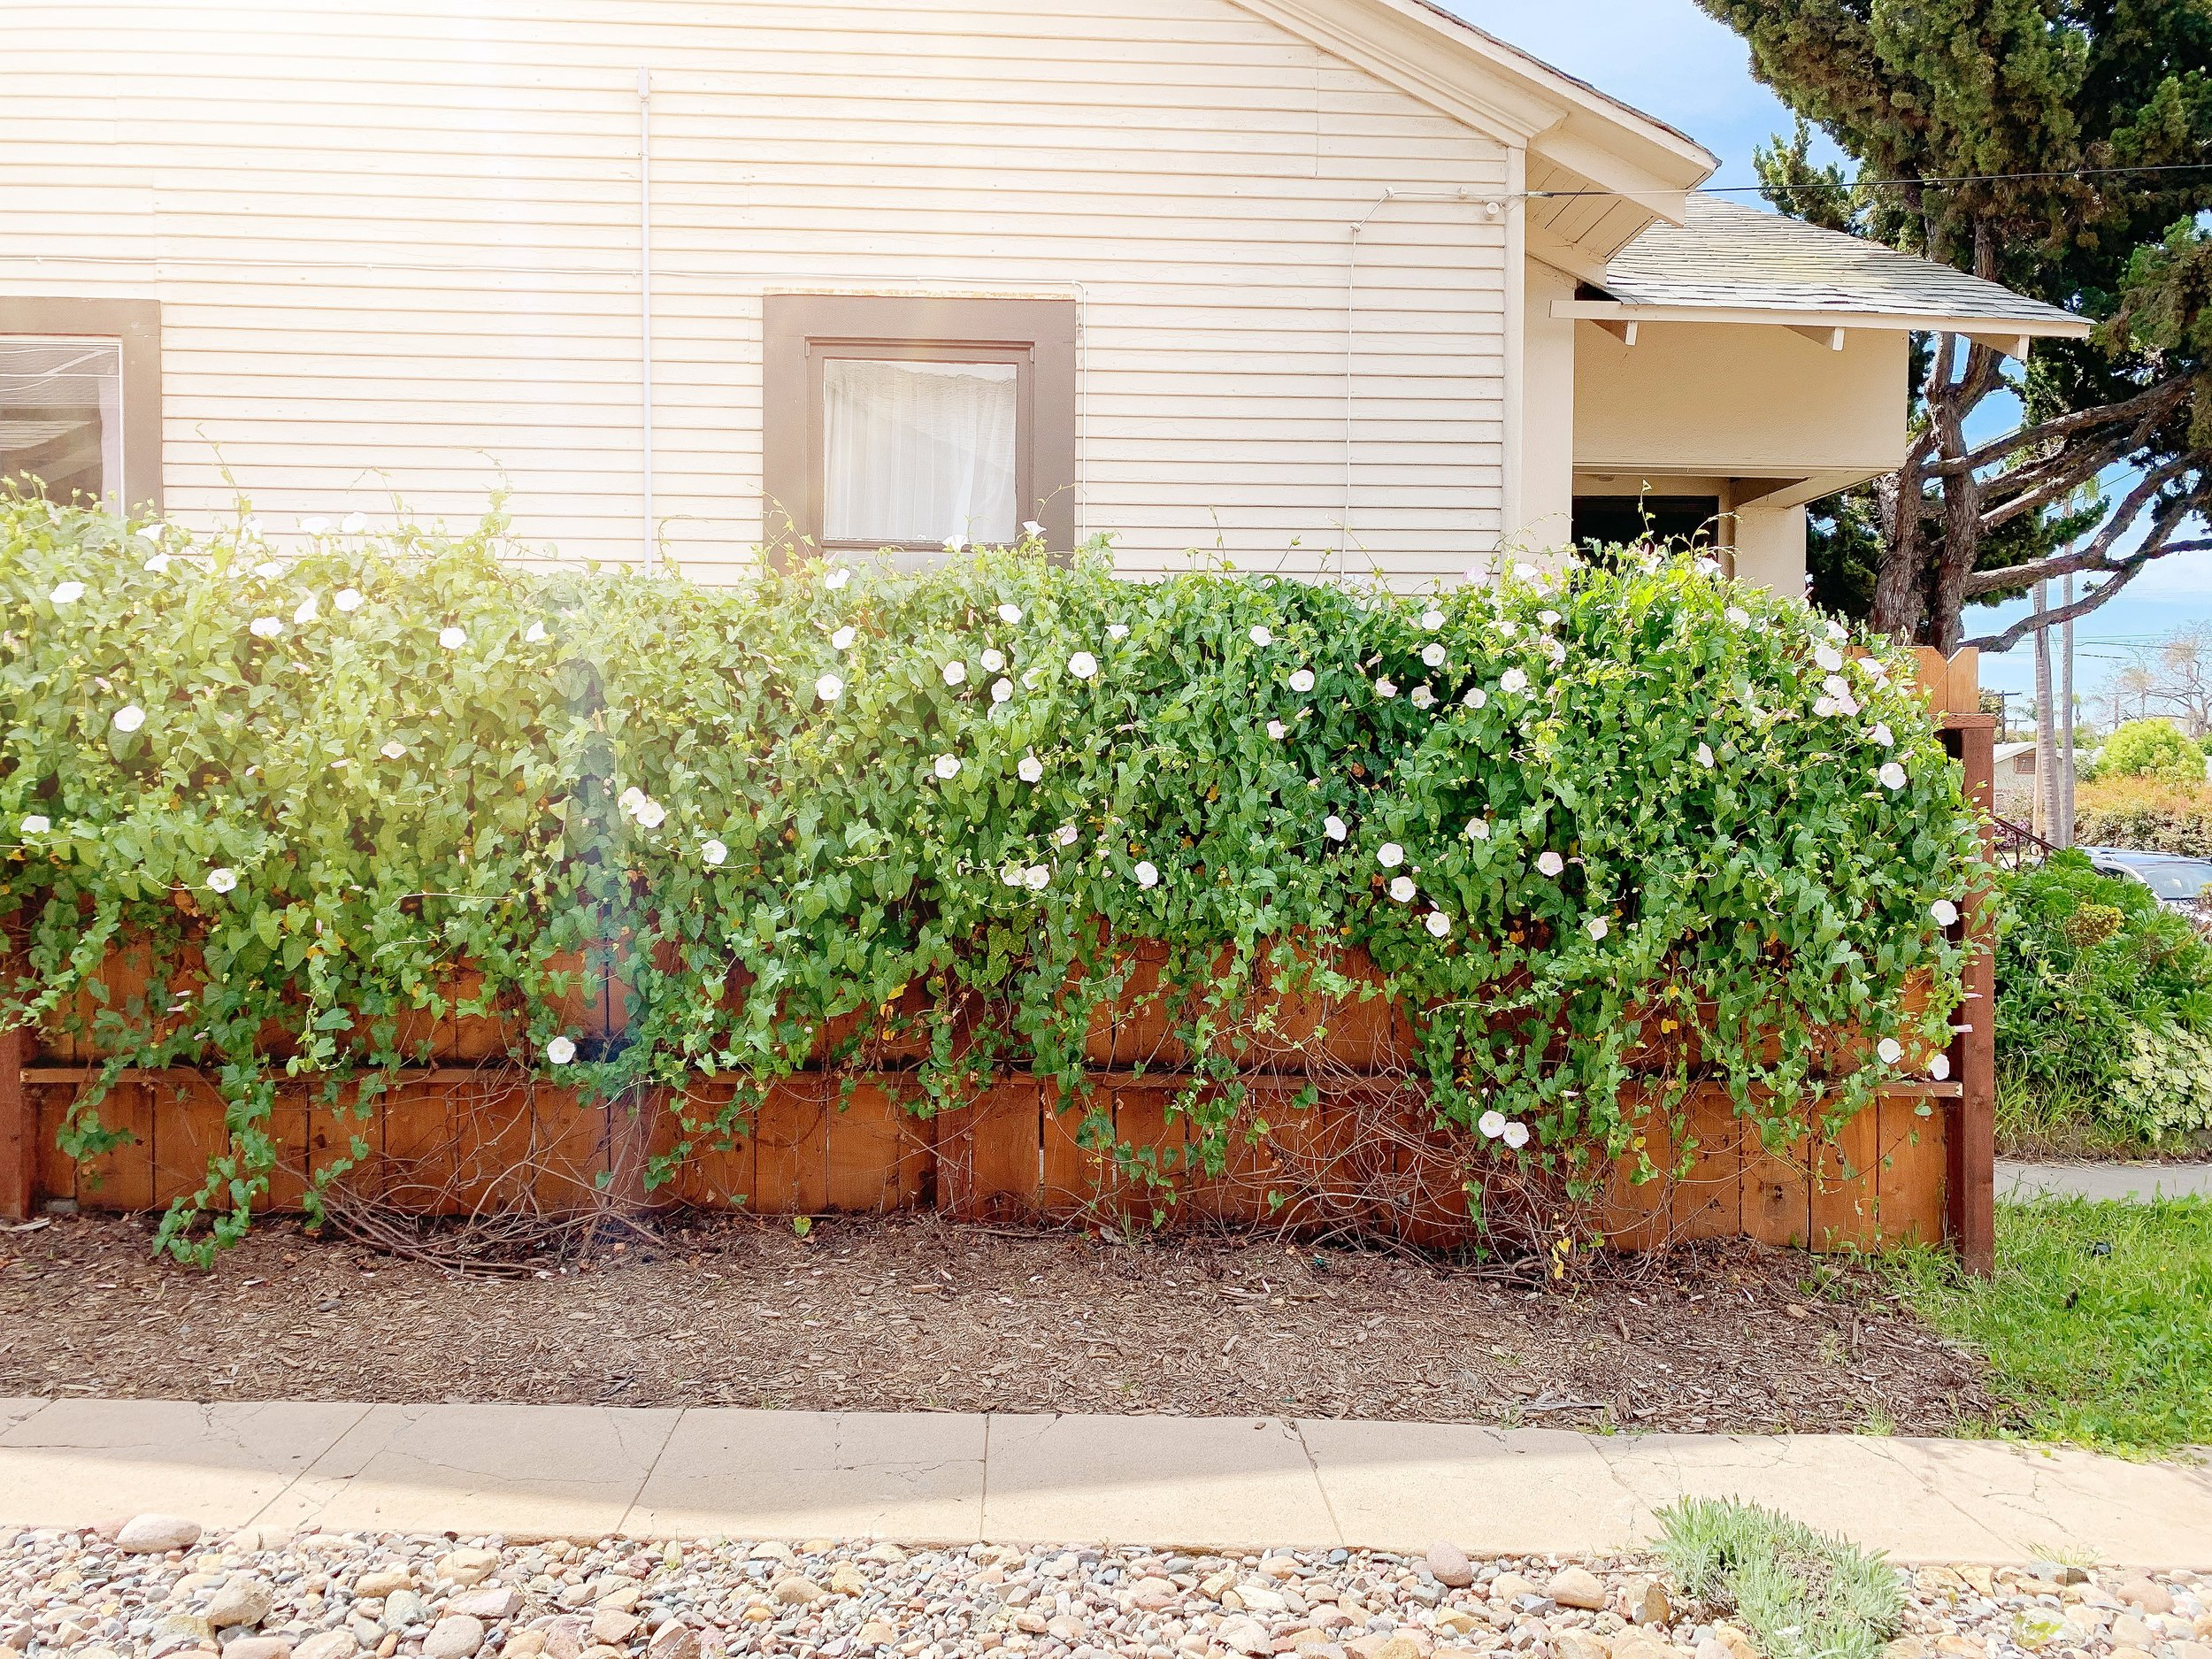 How to train vines to climb a fence and how to refresh an old fence